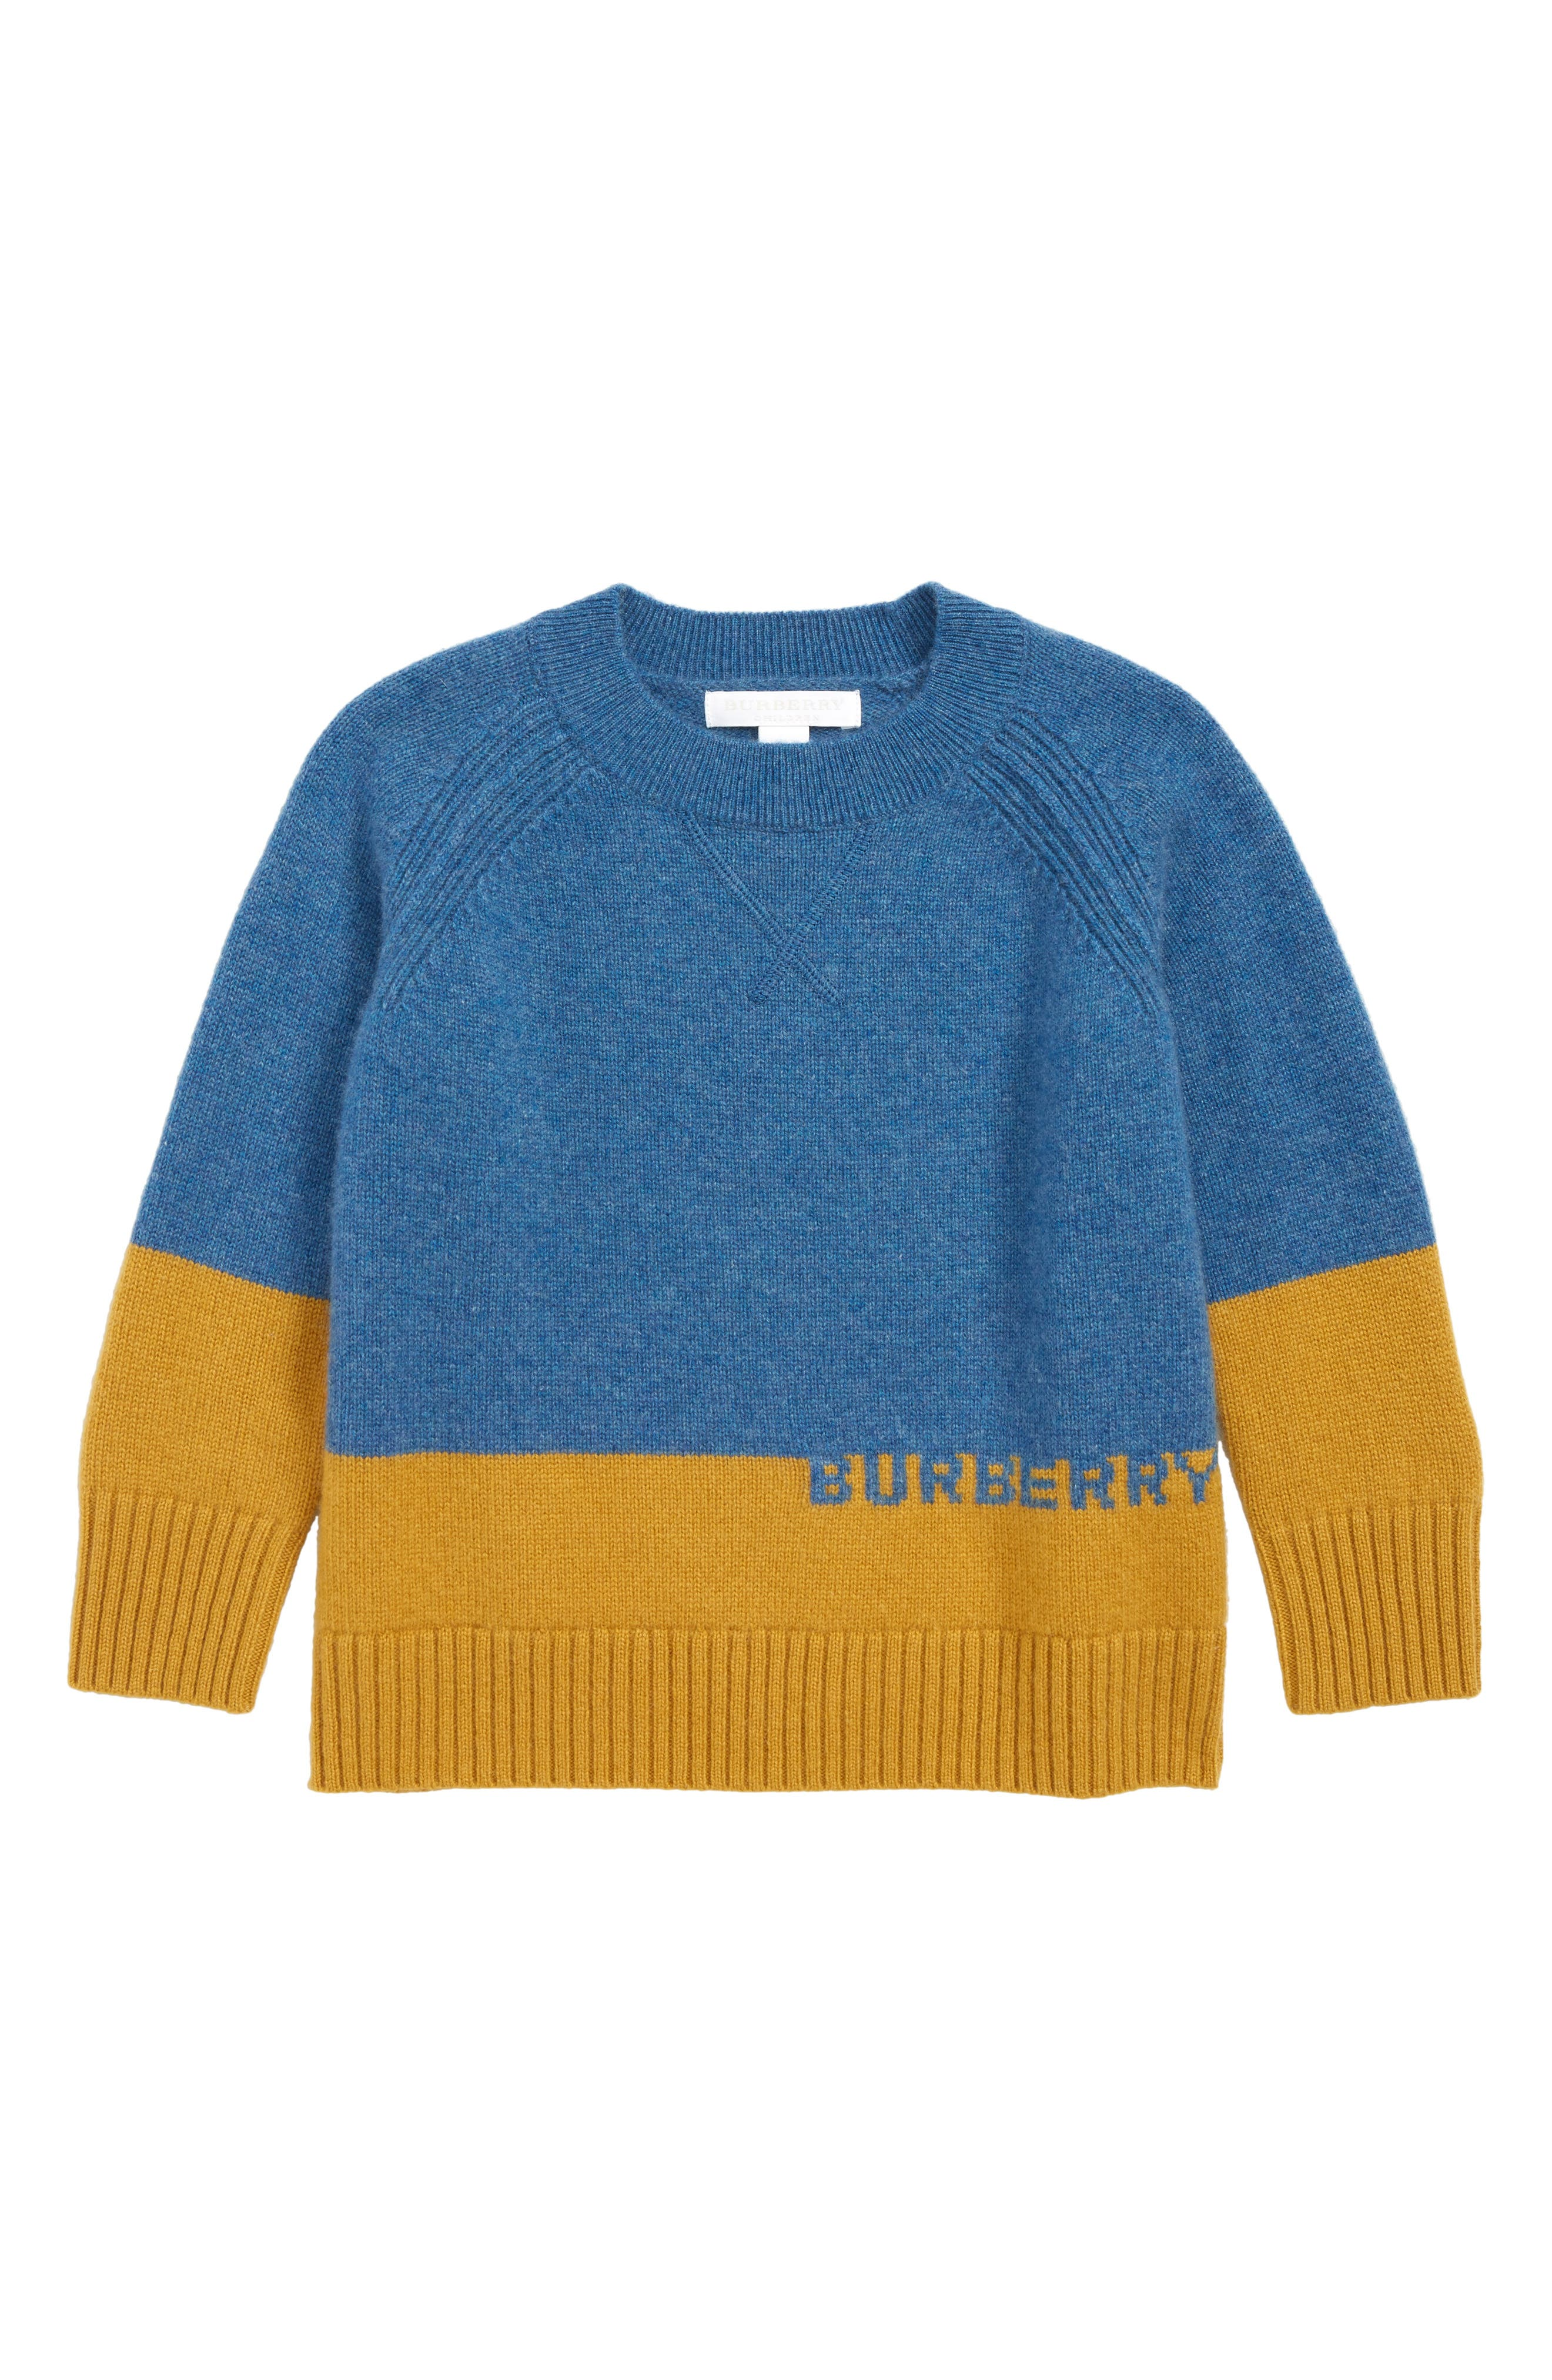 Boys Burberry Alister Cashmere Sweater Size 8Y  Blue